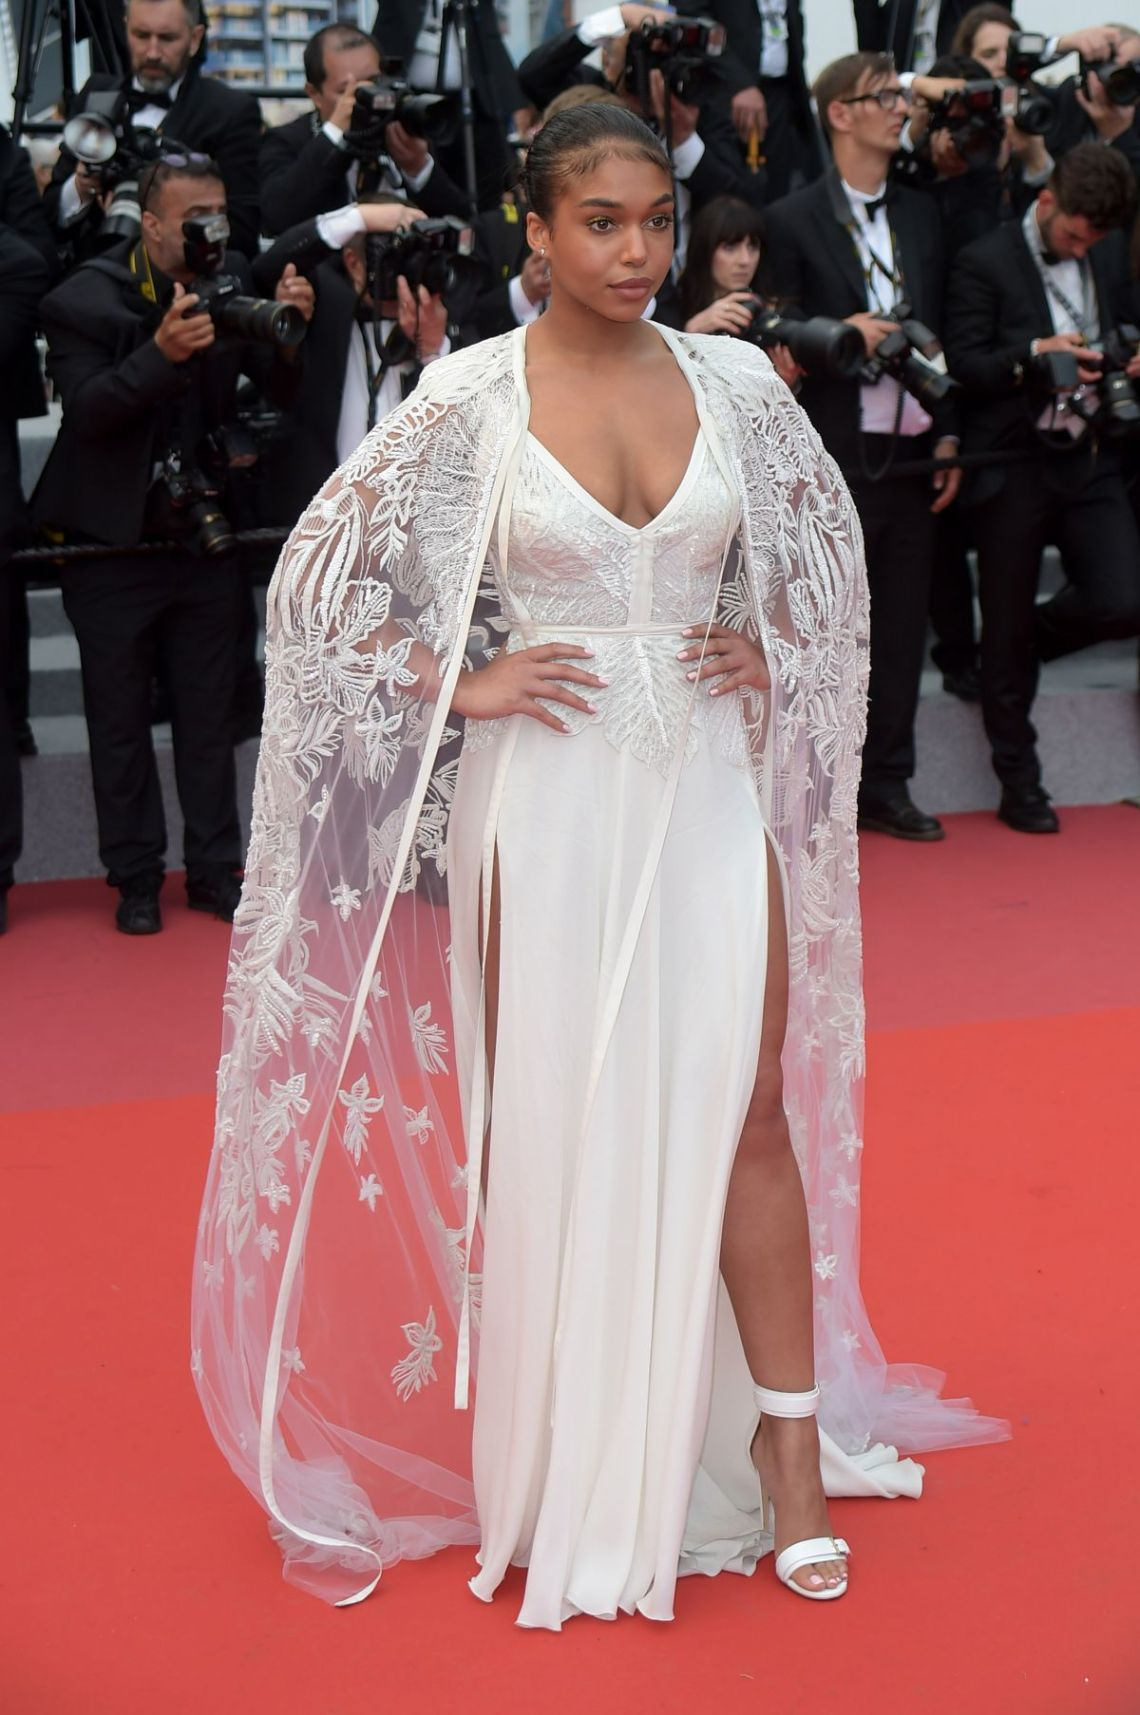 lori-harvey-at-sorry-angel-premiere-71st-cannes-film-festival-france-5Peter Dundas